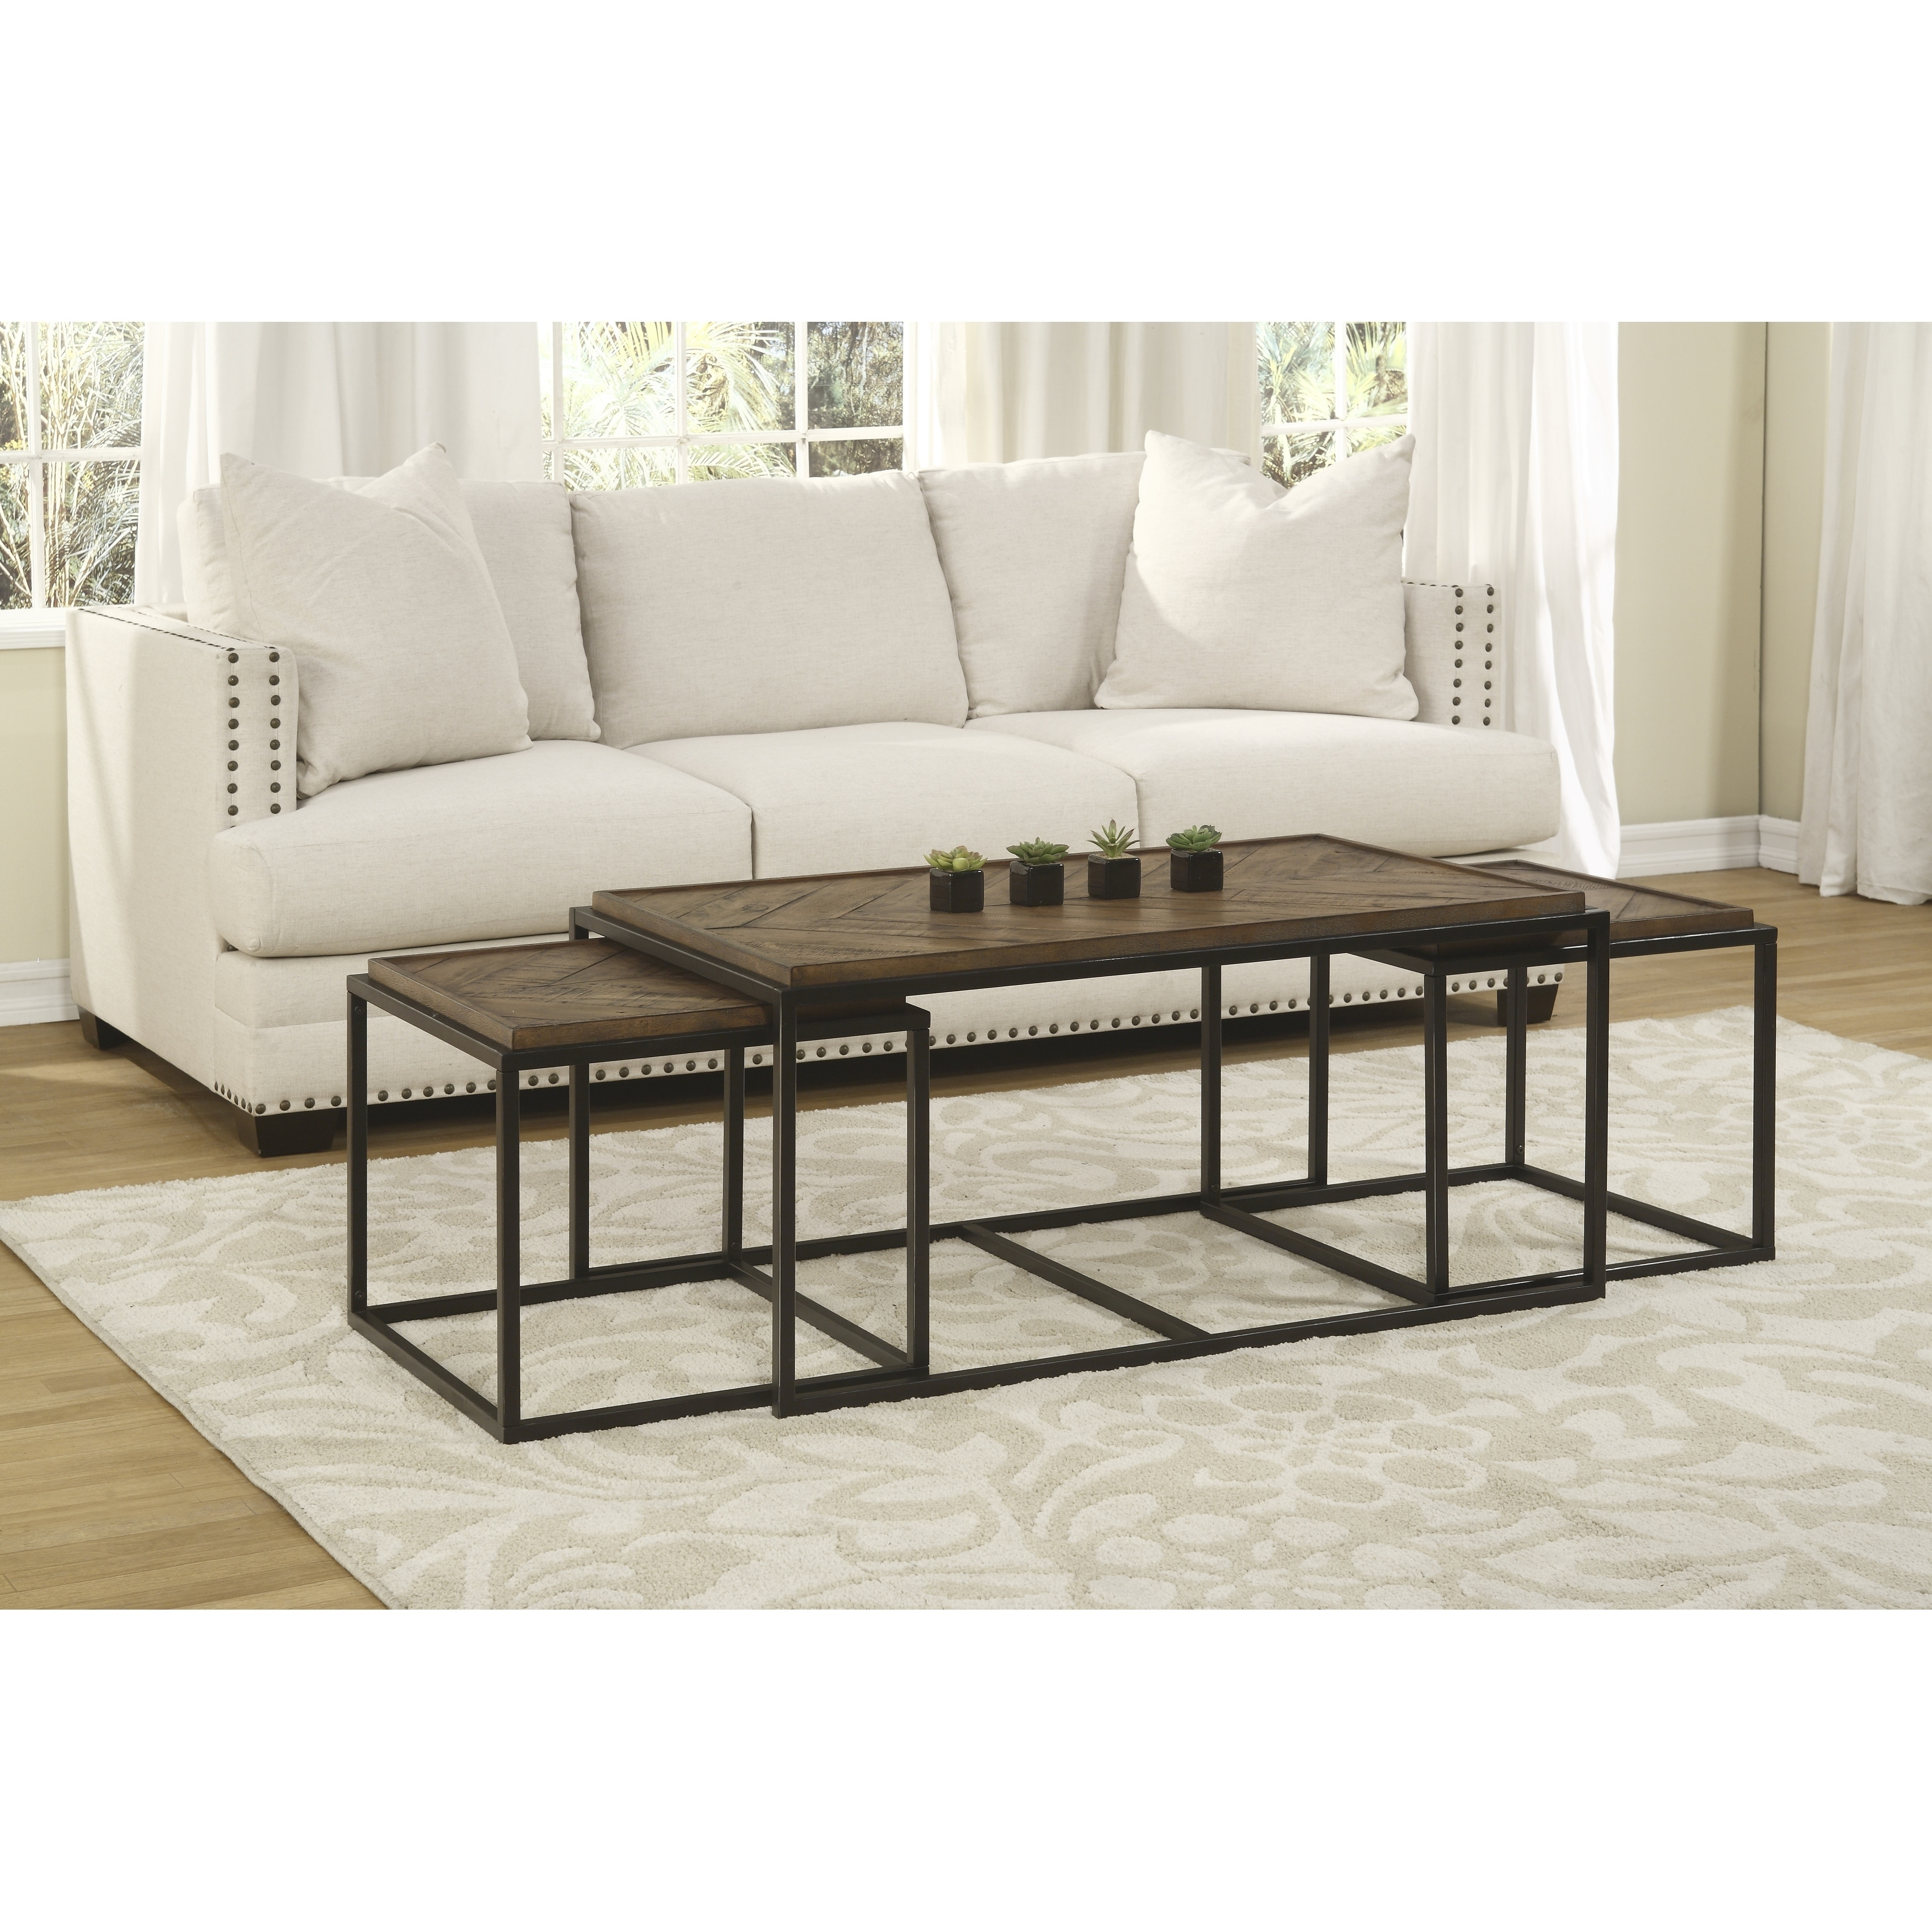 Picture of: Martin Svensson Home Huntington Nesting Coffee And End Table Set Overstock 30304997